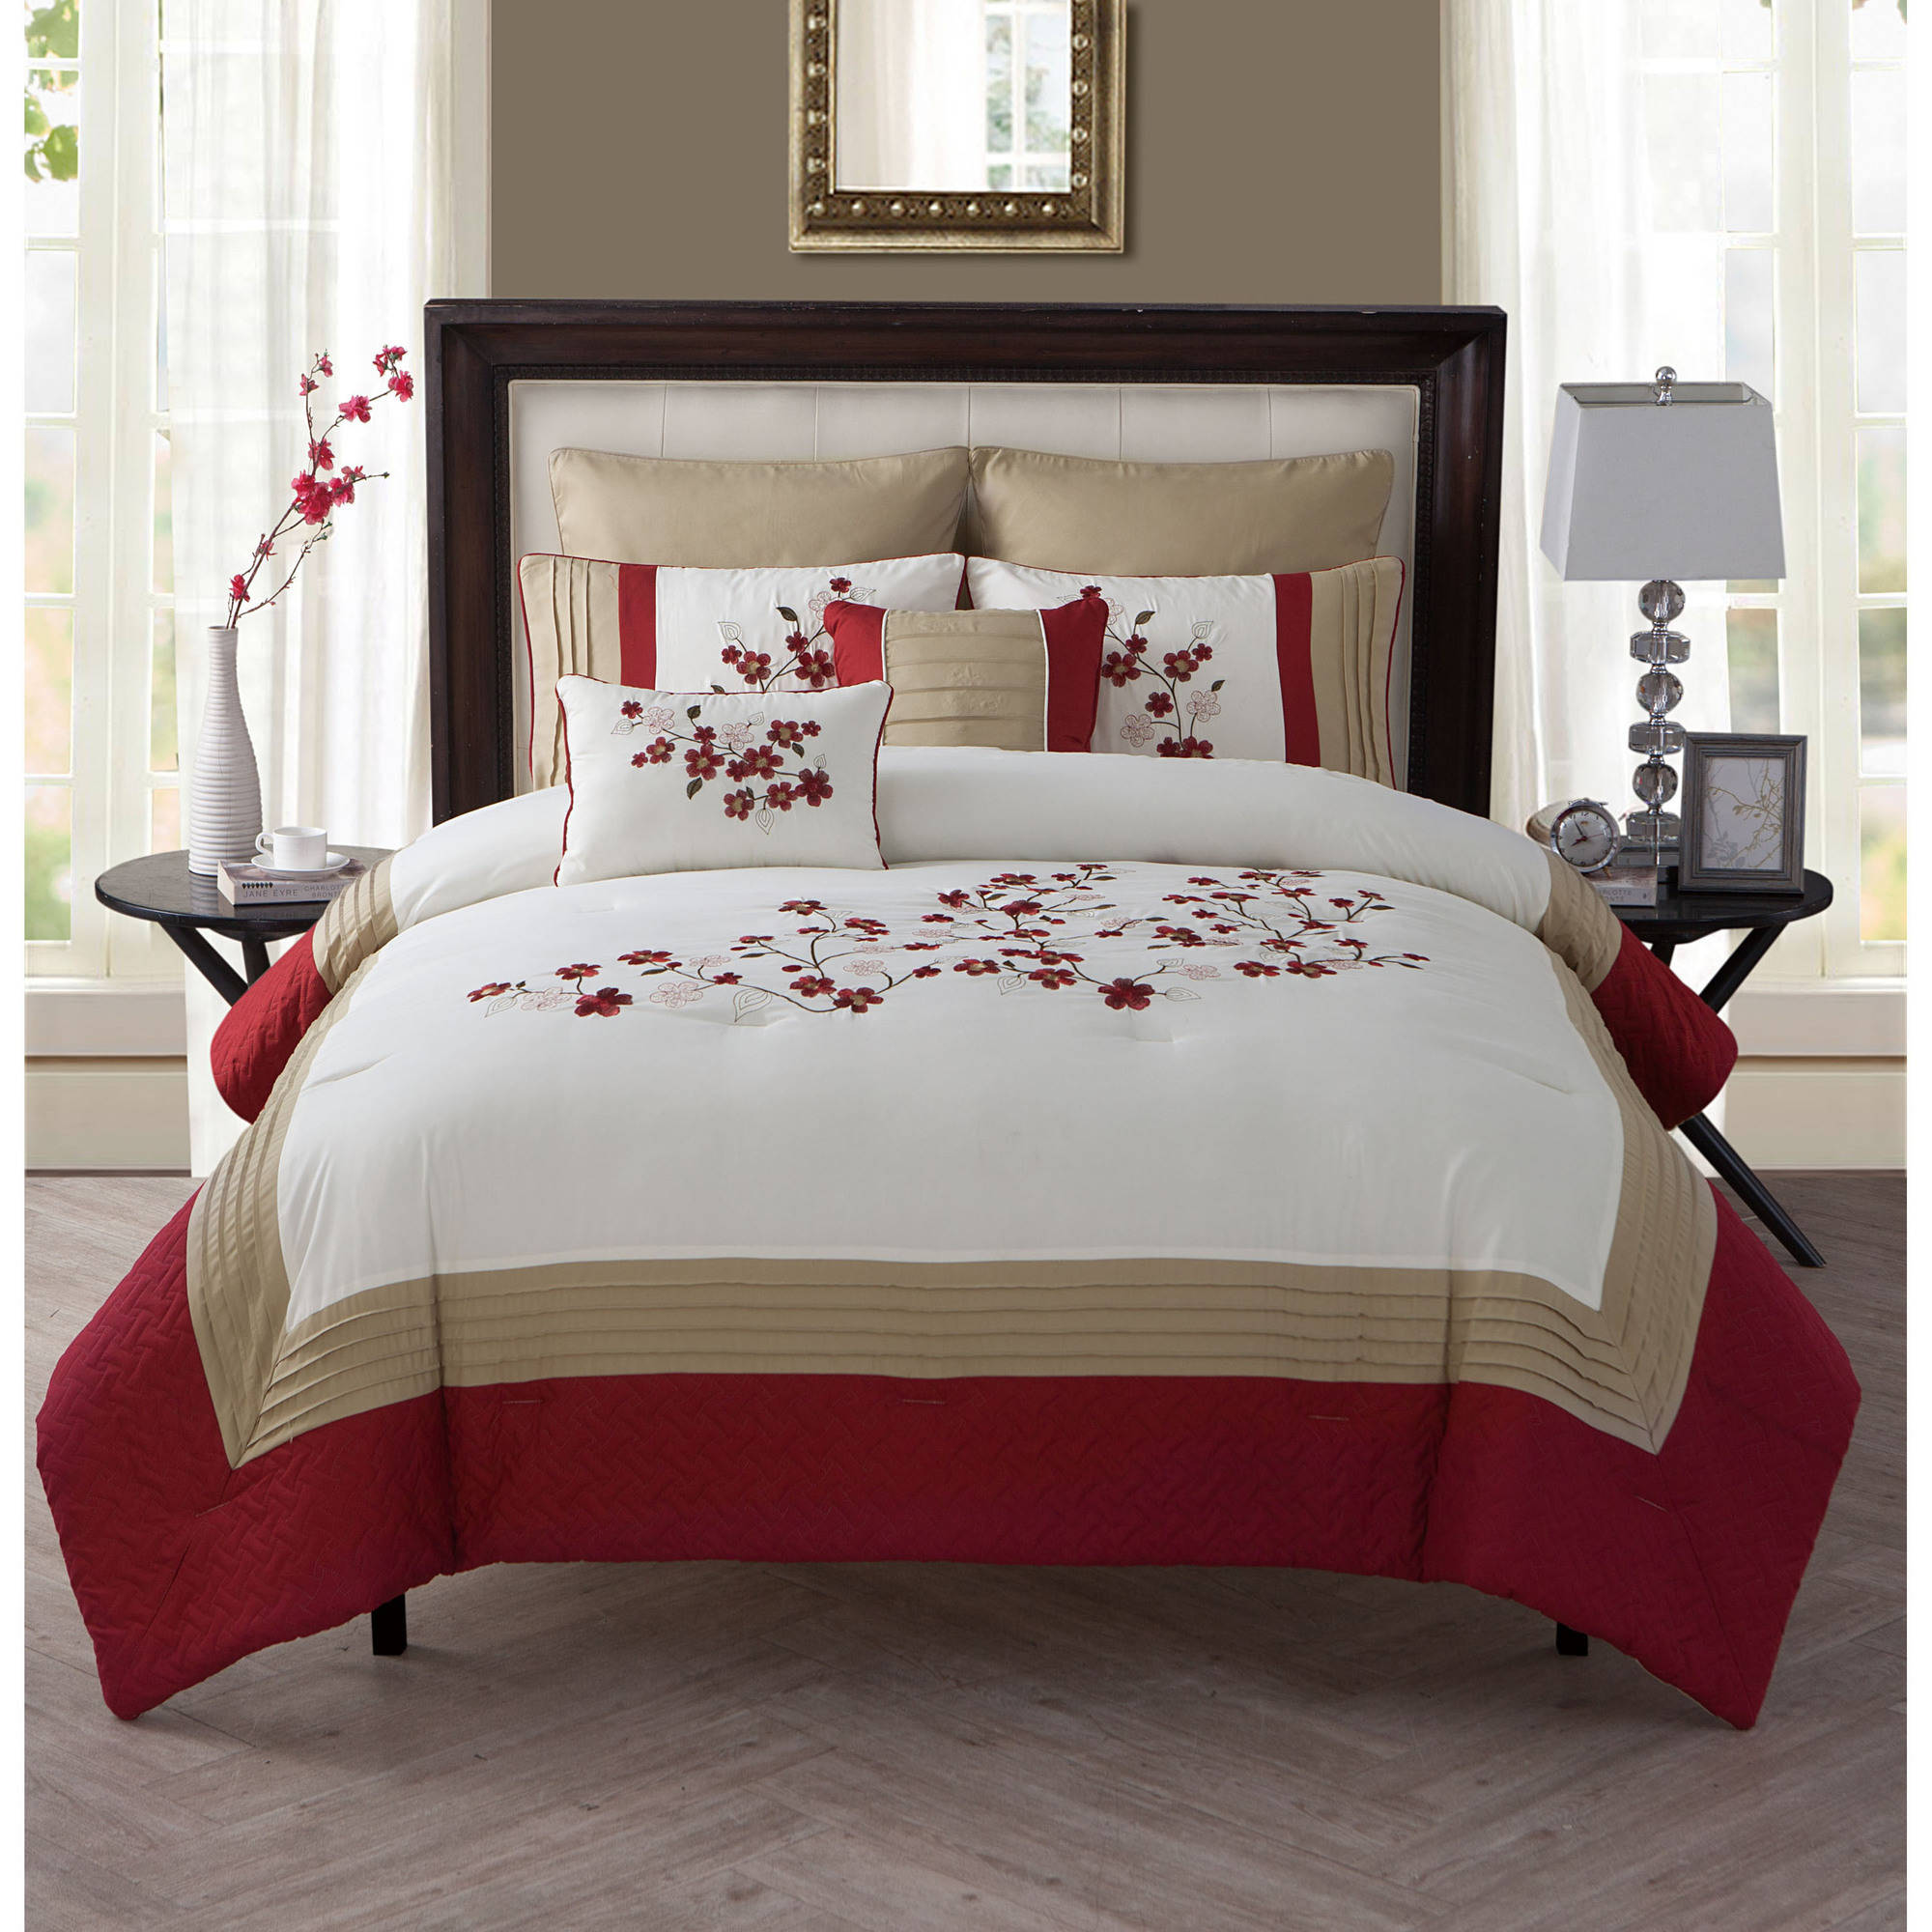 Better Homes and Gardens Cherry Blossom 7-Piece Comforter Set